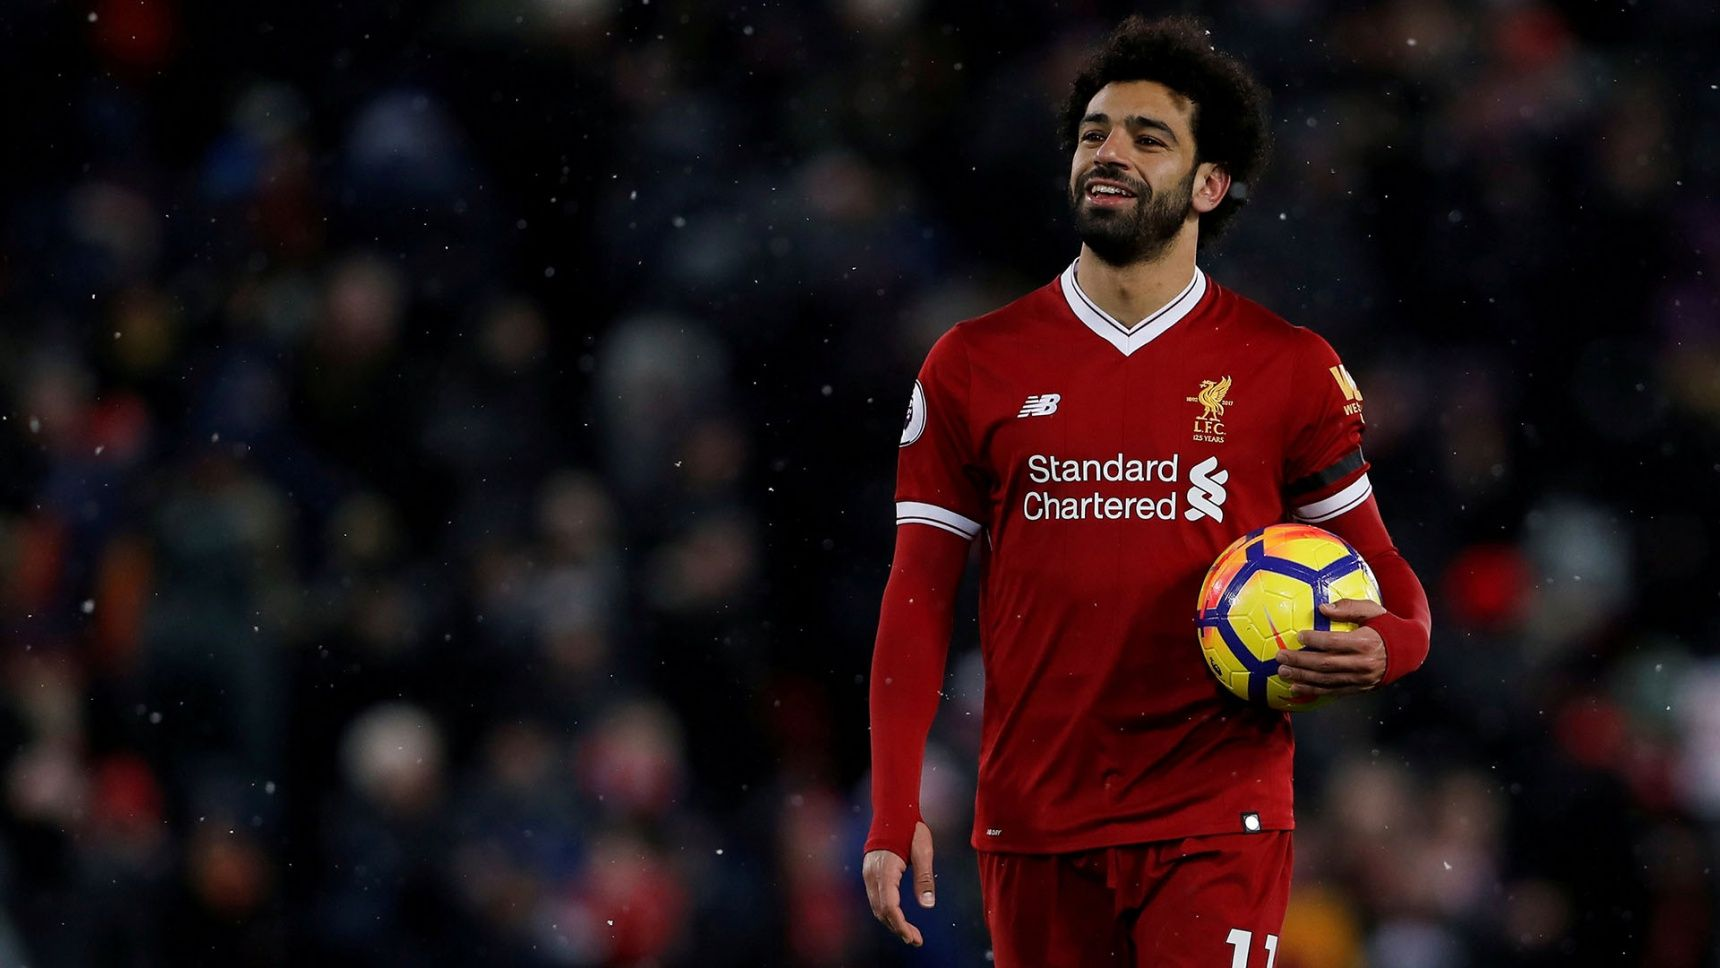 "Soccer Football – Premier League – Liverpool vs Watford – Anfield, Liverpool, Britain – March 17, 2018   Liverpool's Mohamed Salah celebrates with the match ball after the match    Action Images via Reuters/Lee Smith    EDITORIAL USE ONLY. No use with unauthorized audio, video, data, fixture lists, club/league logos or ""live"" services. Online in-match use limited to 75 images, no video emulation. No use in betting, games or single club/league/player publications.  Please contact your account representative for further details.     TPX IMAGES OF THE DAY"